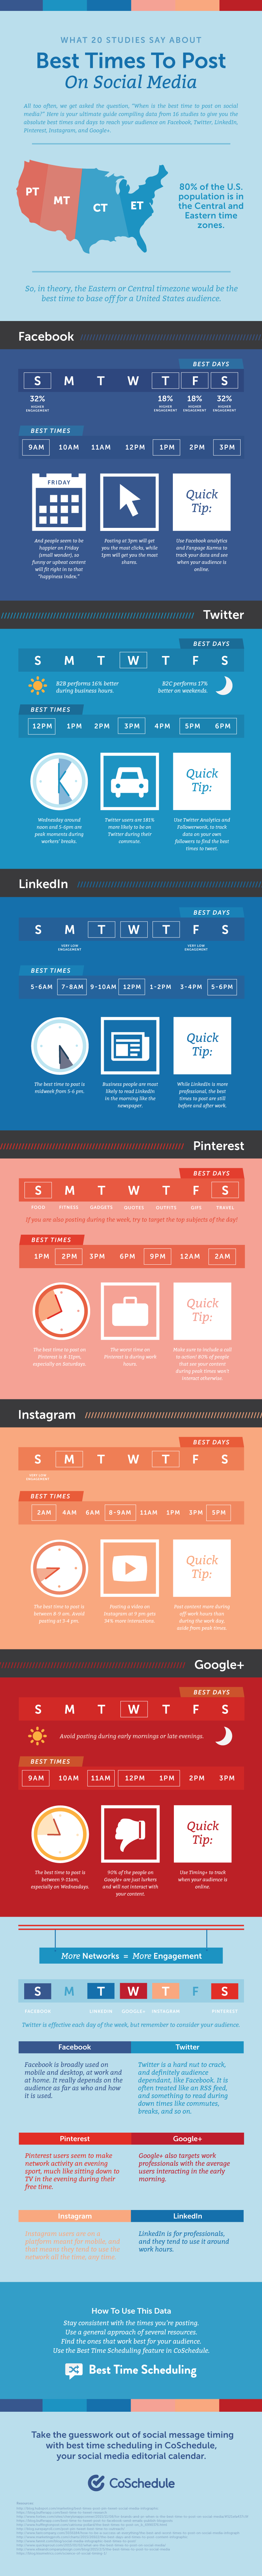 Best Time to Post on Social Media according to  CoSchedule